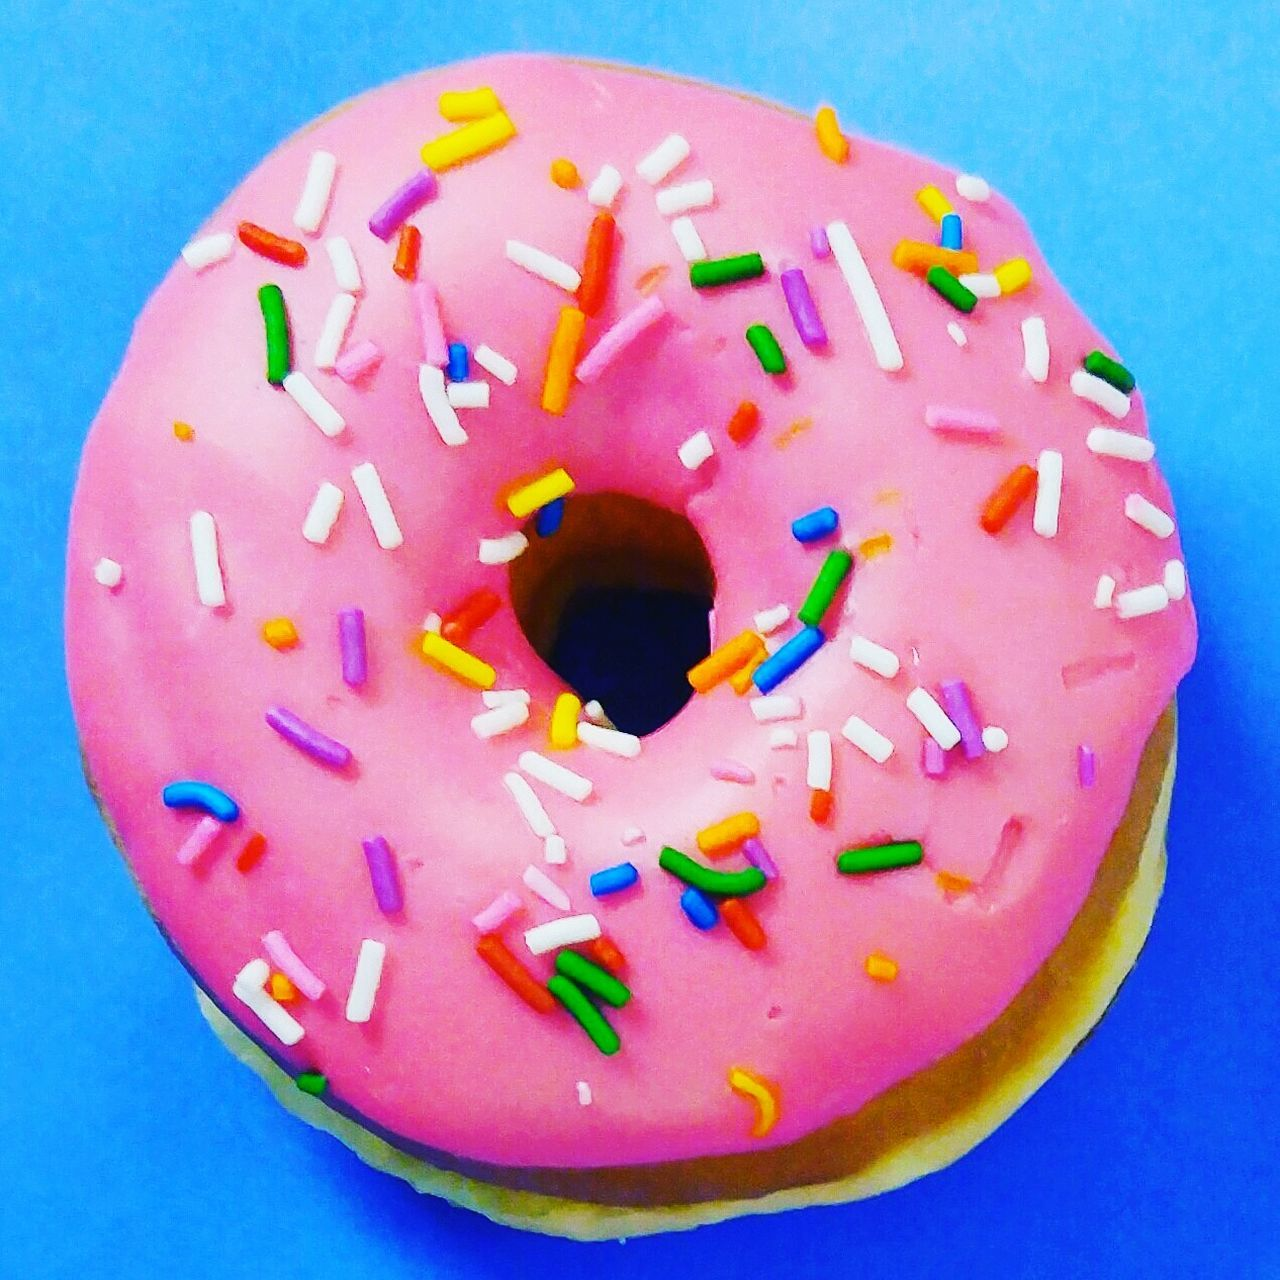 food and drink, food, unhealthy eating, indulgence, sprinkles, sweet food, studio shot, close-up, donut, high angle view, ready-to-eat, freshness, directly above, no people, multi colored, indoors, dessert, temptation, blue, anthropomorphic face, day